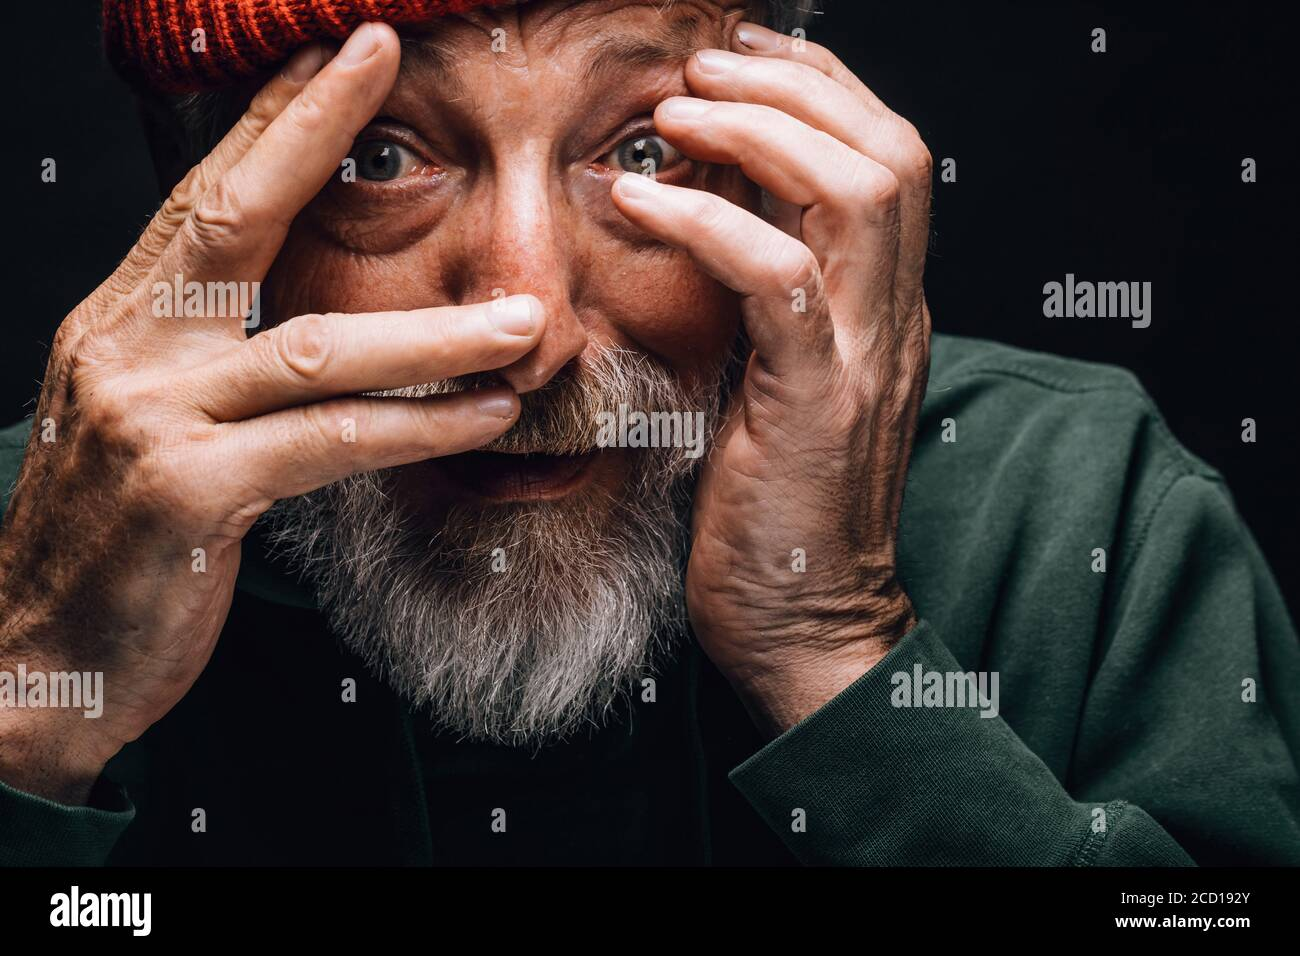 An elderly bearded man looking extremely surprised or frightened, protecting his face with hands, close up face portrait over black studio background. Stock Photo